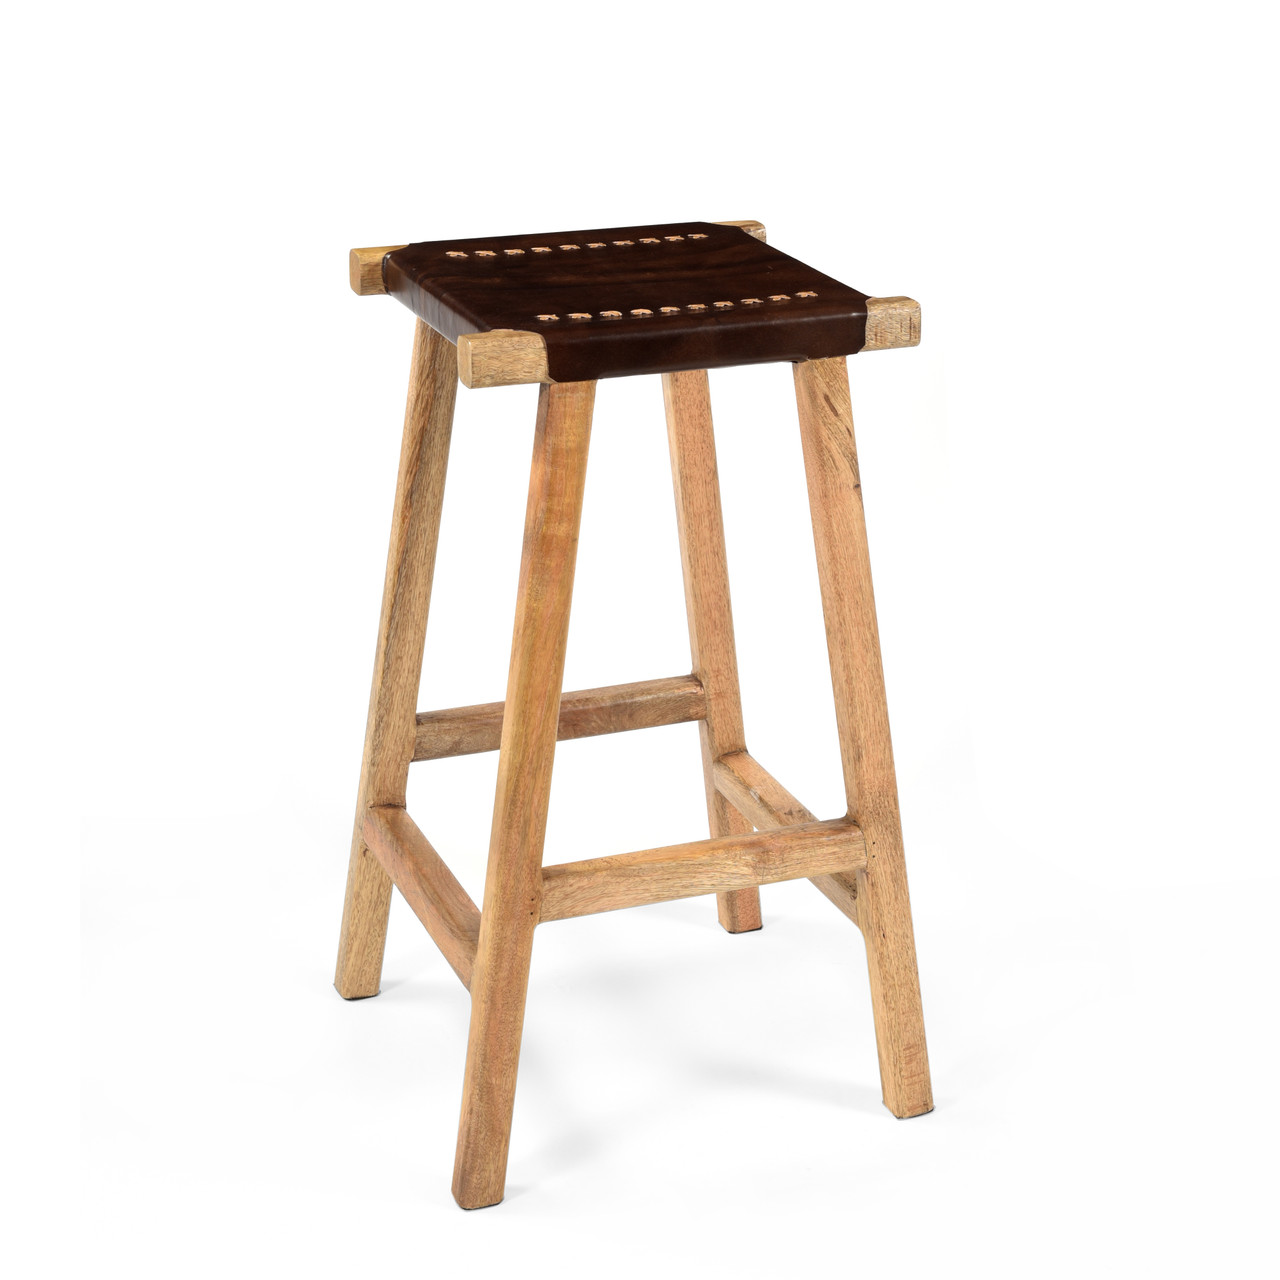 Surprising Stitch Wood Bar Stool Lamtechconsult Wood Chair Design Ideas Lamtechconsultcom